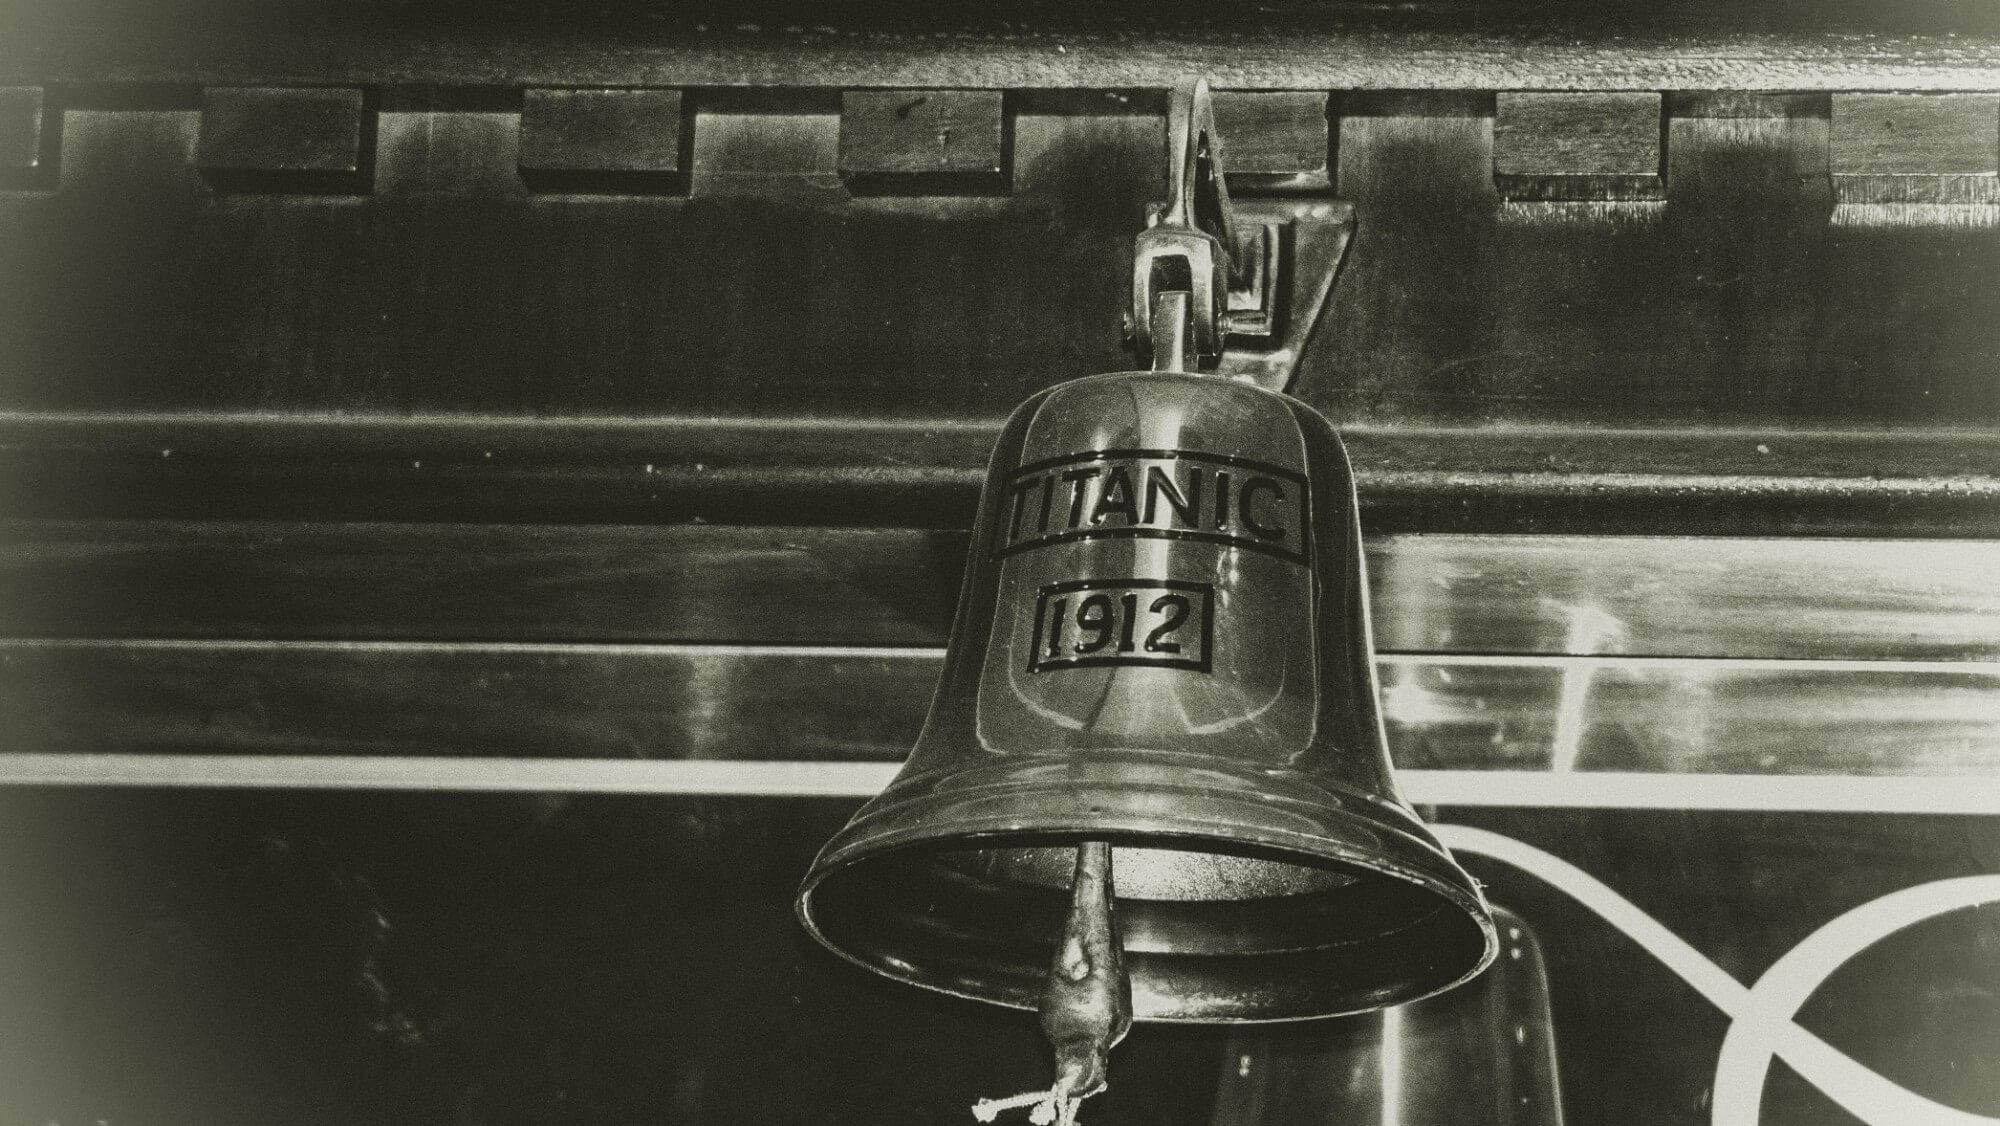 Photo of bell from Titanic, with the date marked 1912